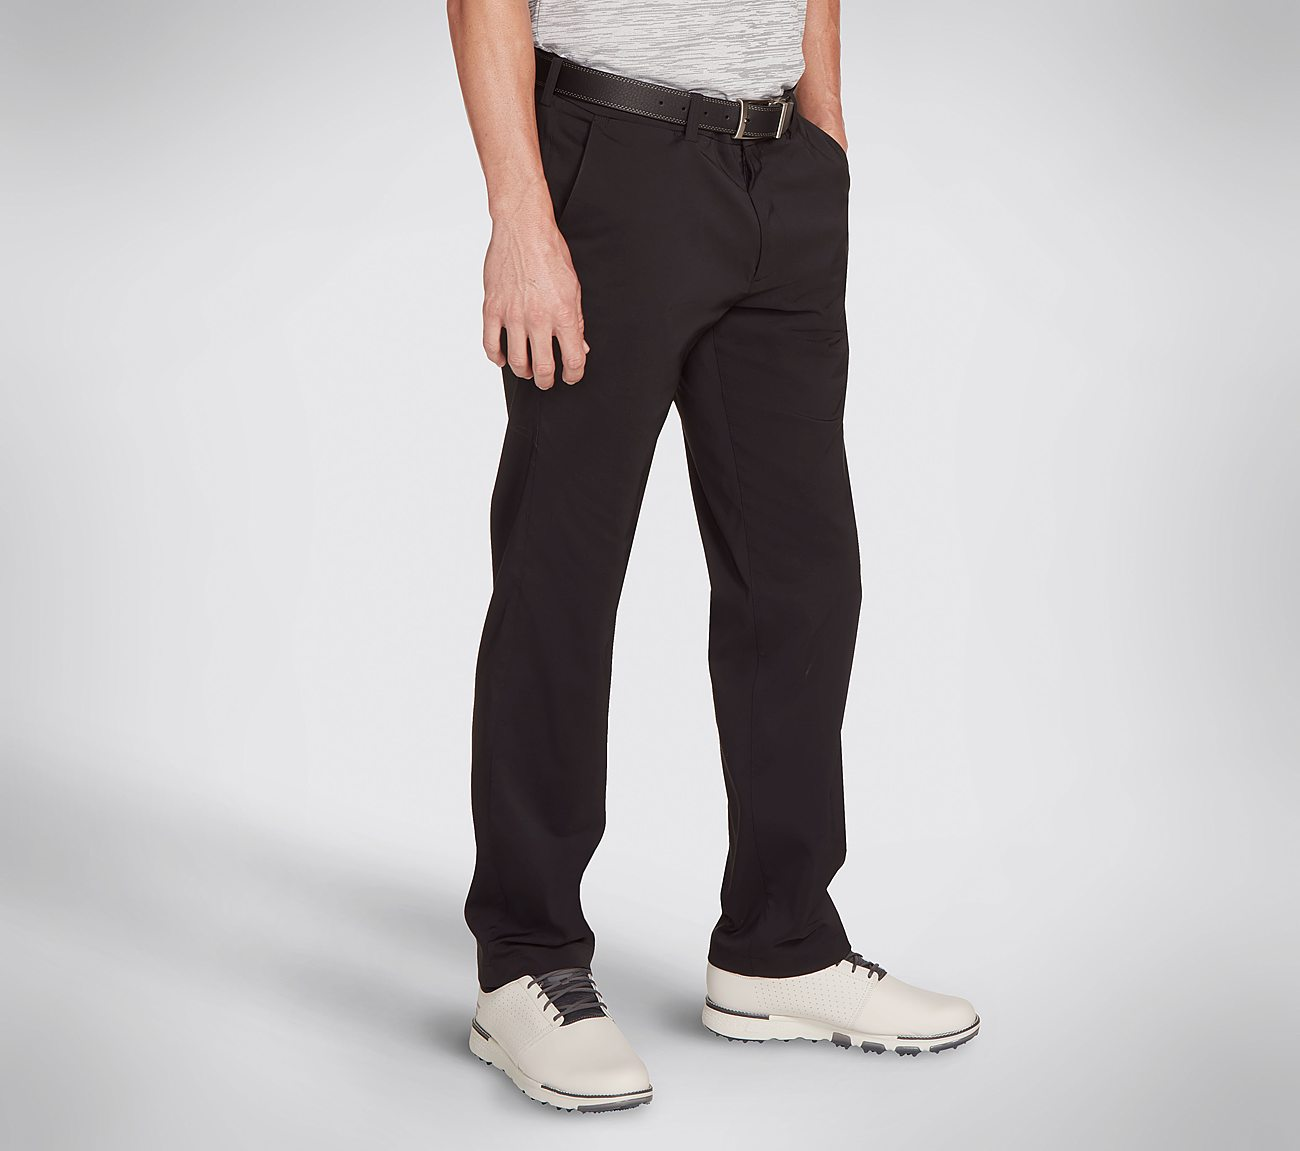 Skechers GO GOLF Rocklin Chino Pant II